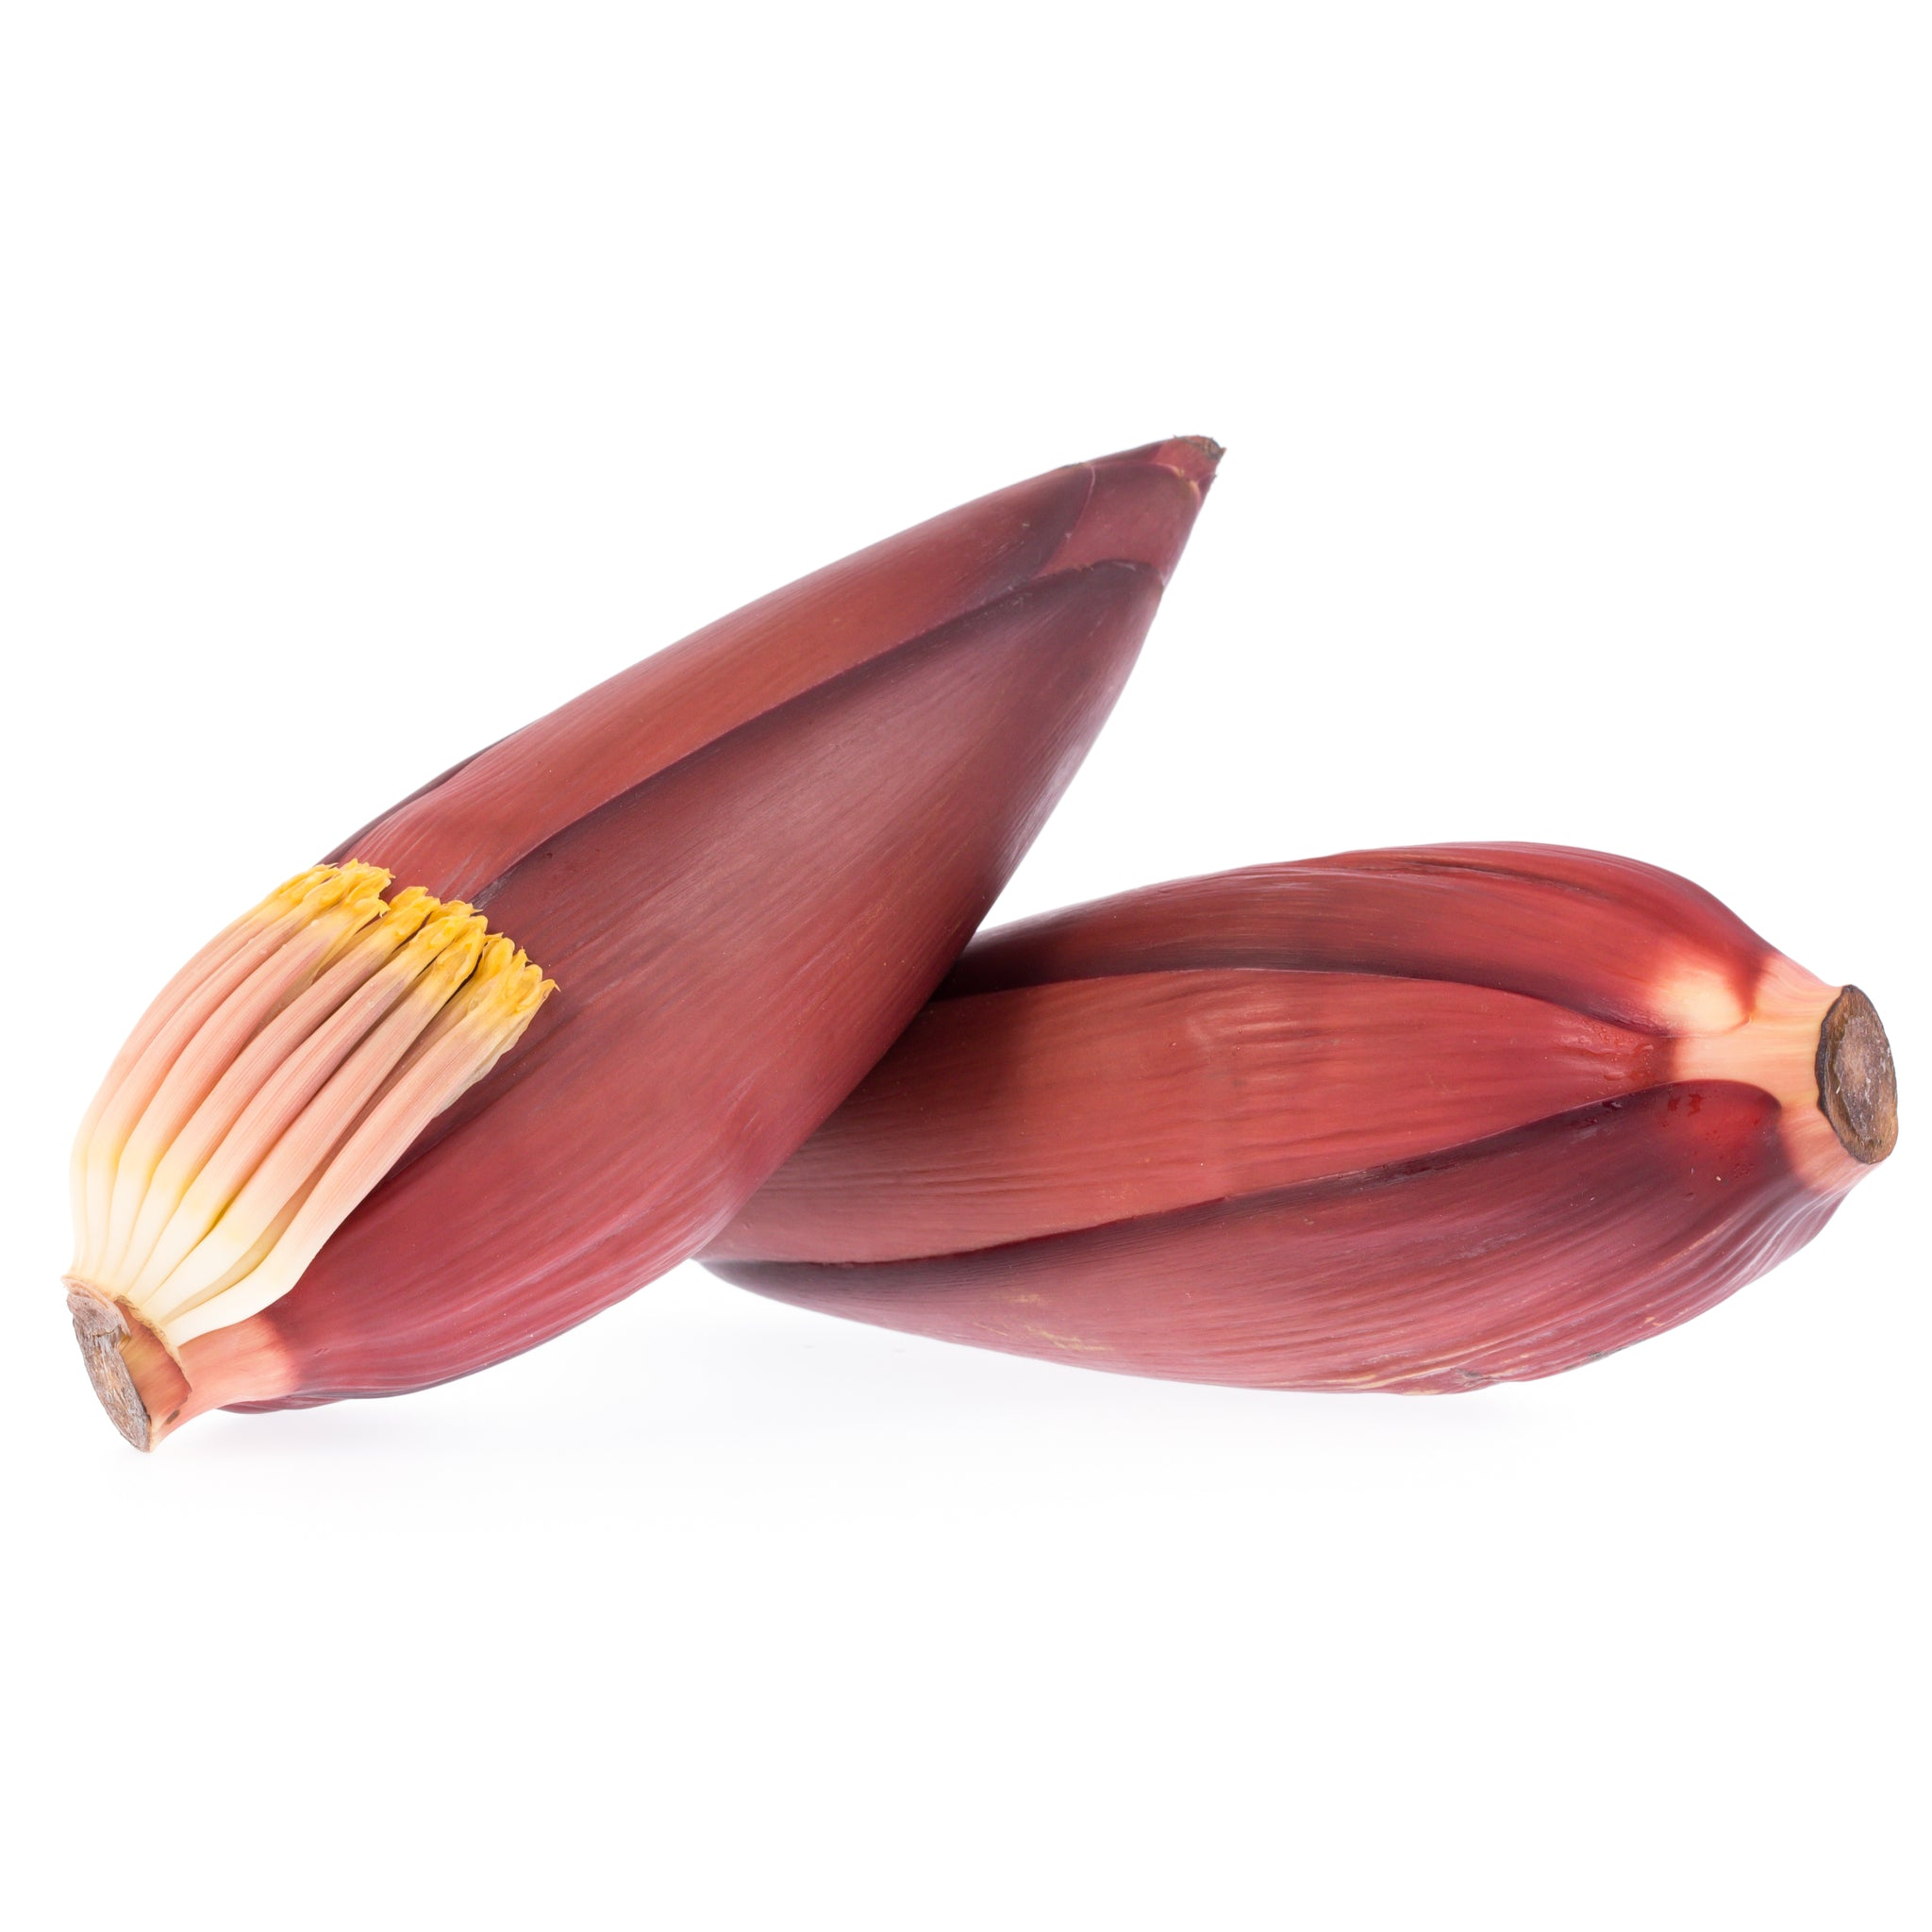 Fresh Thai banana flower (hua blee)